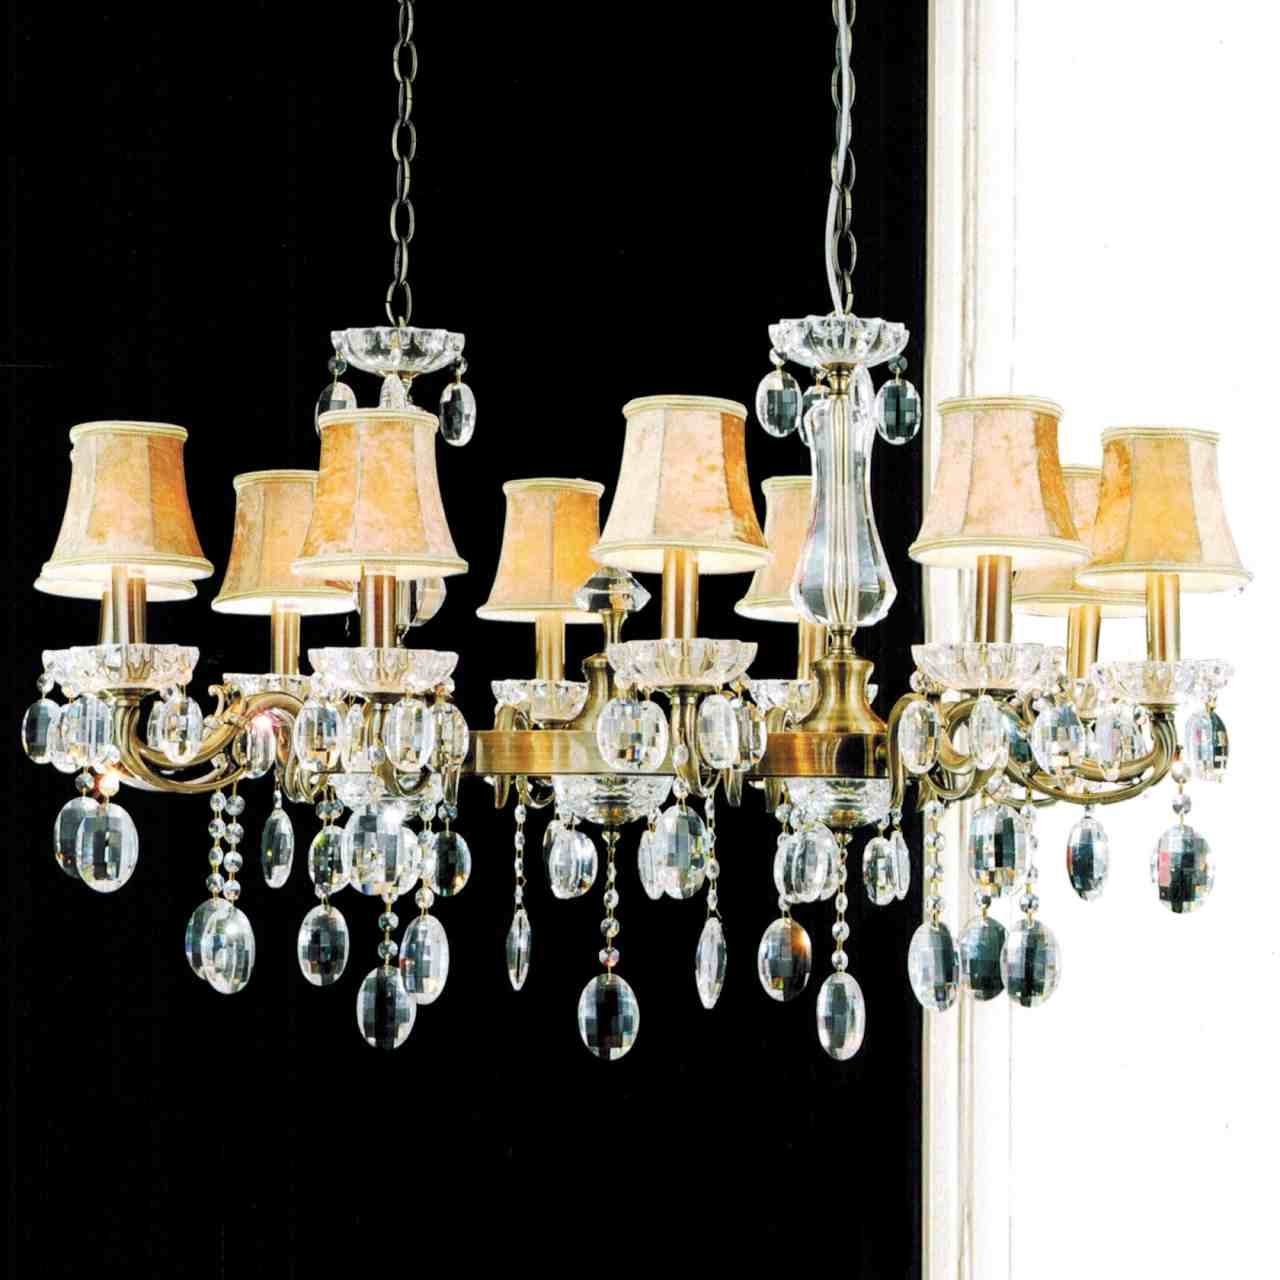 Brizzo Lighting Stores 37 Ottone Traditional Candle Oval Crystal Within Chandelier Lamp Shades (Image 6 of 25)